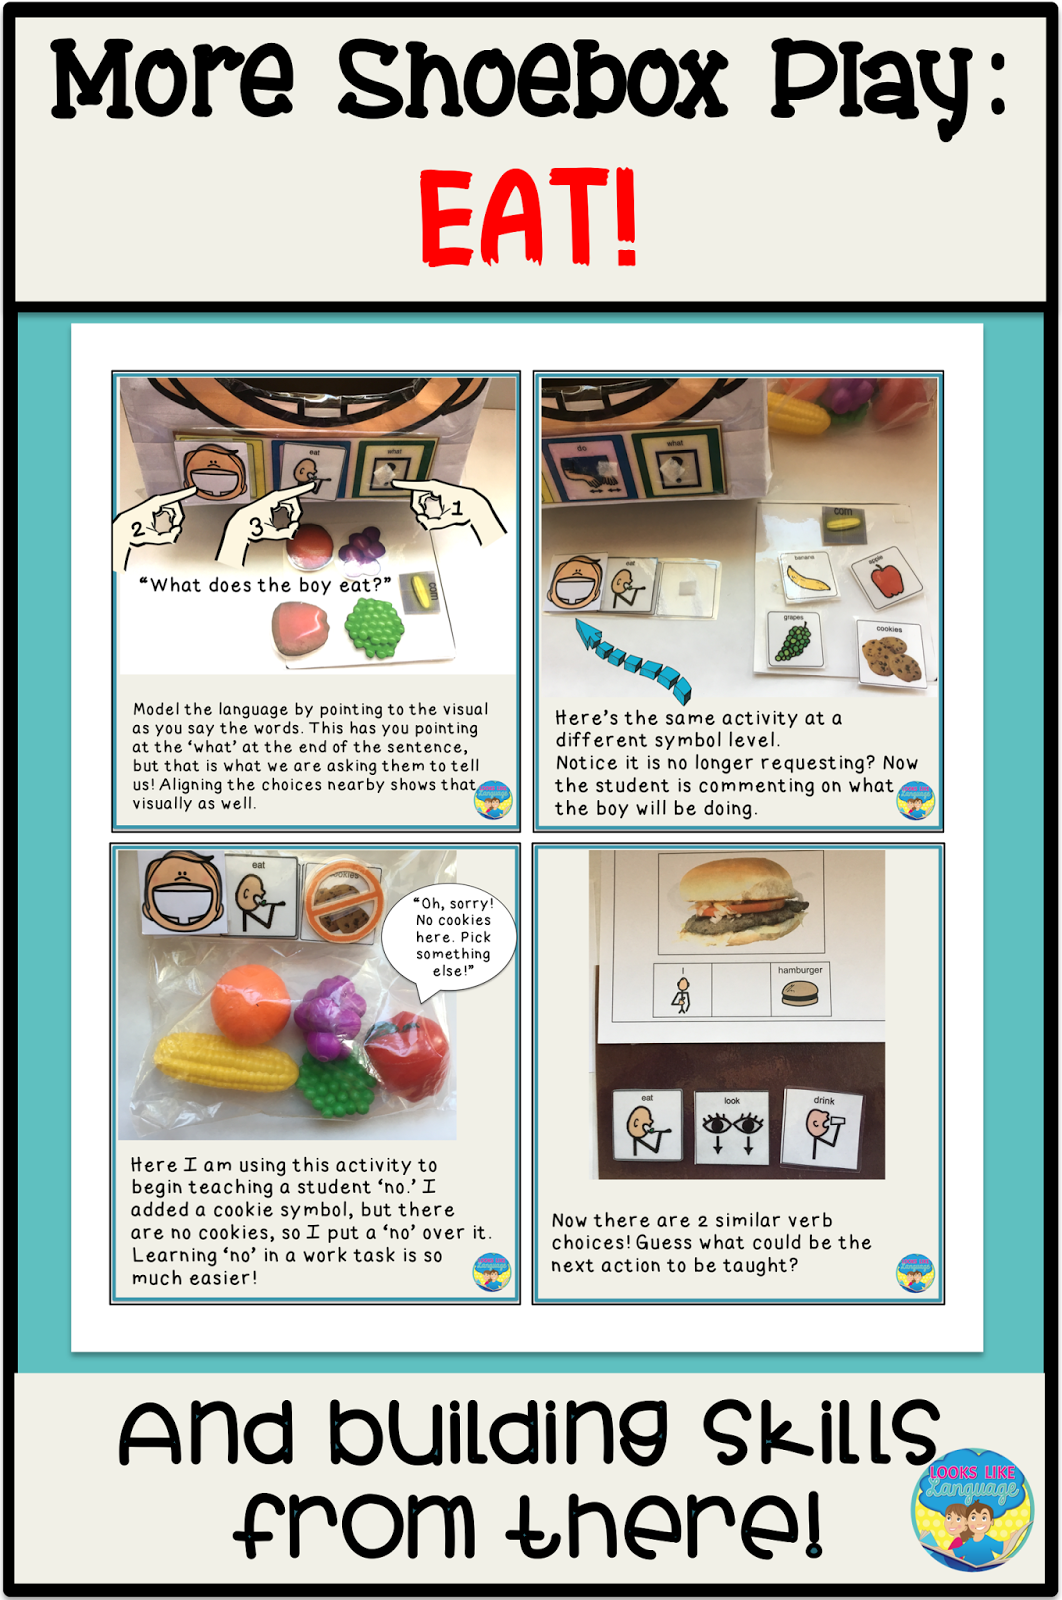 More shoebox play tips eat a visual blog post cant find more ideas for shoebox play eat and how to develop skills from there biocorpaavc